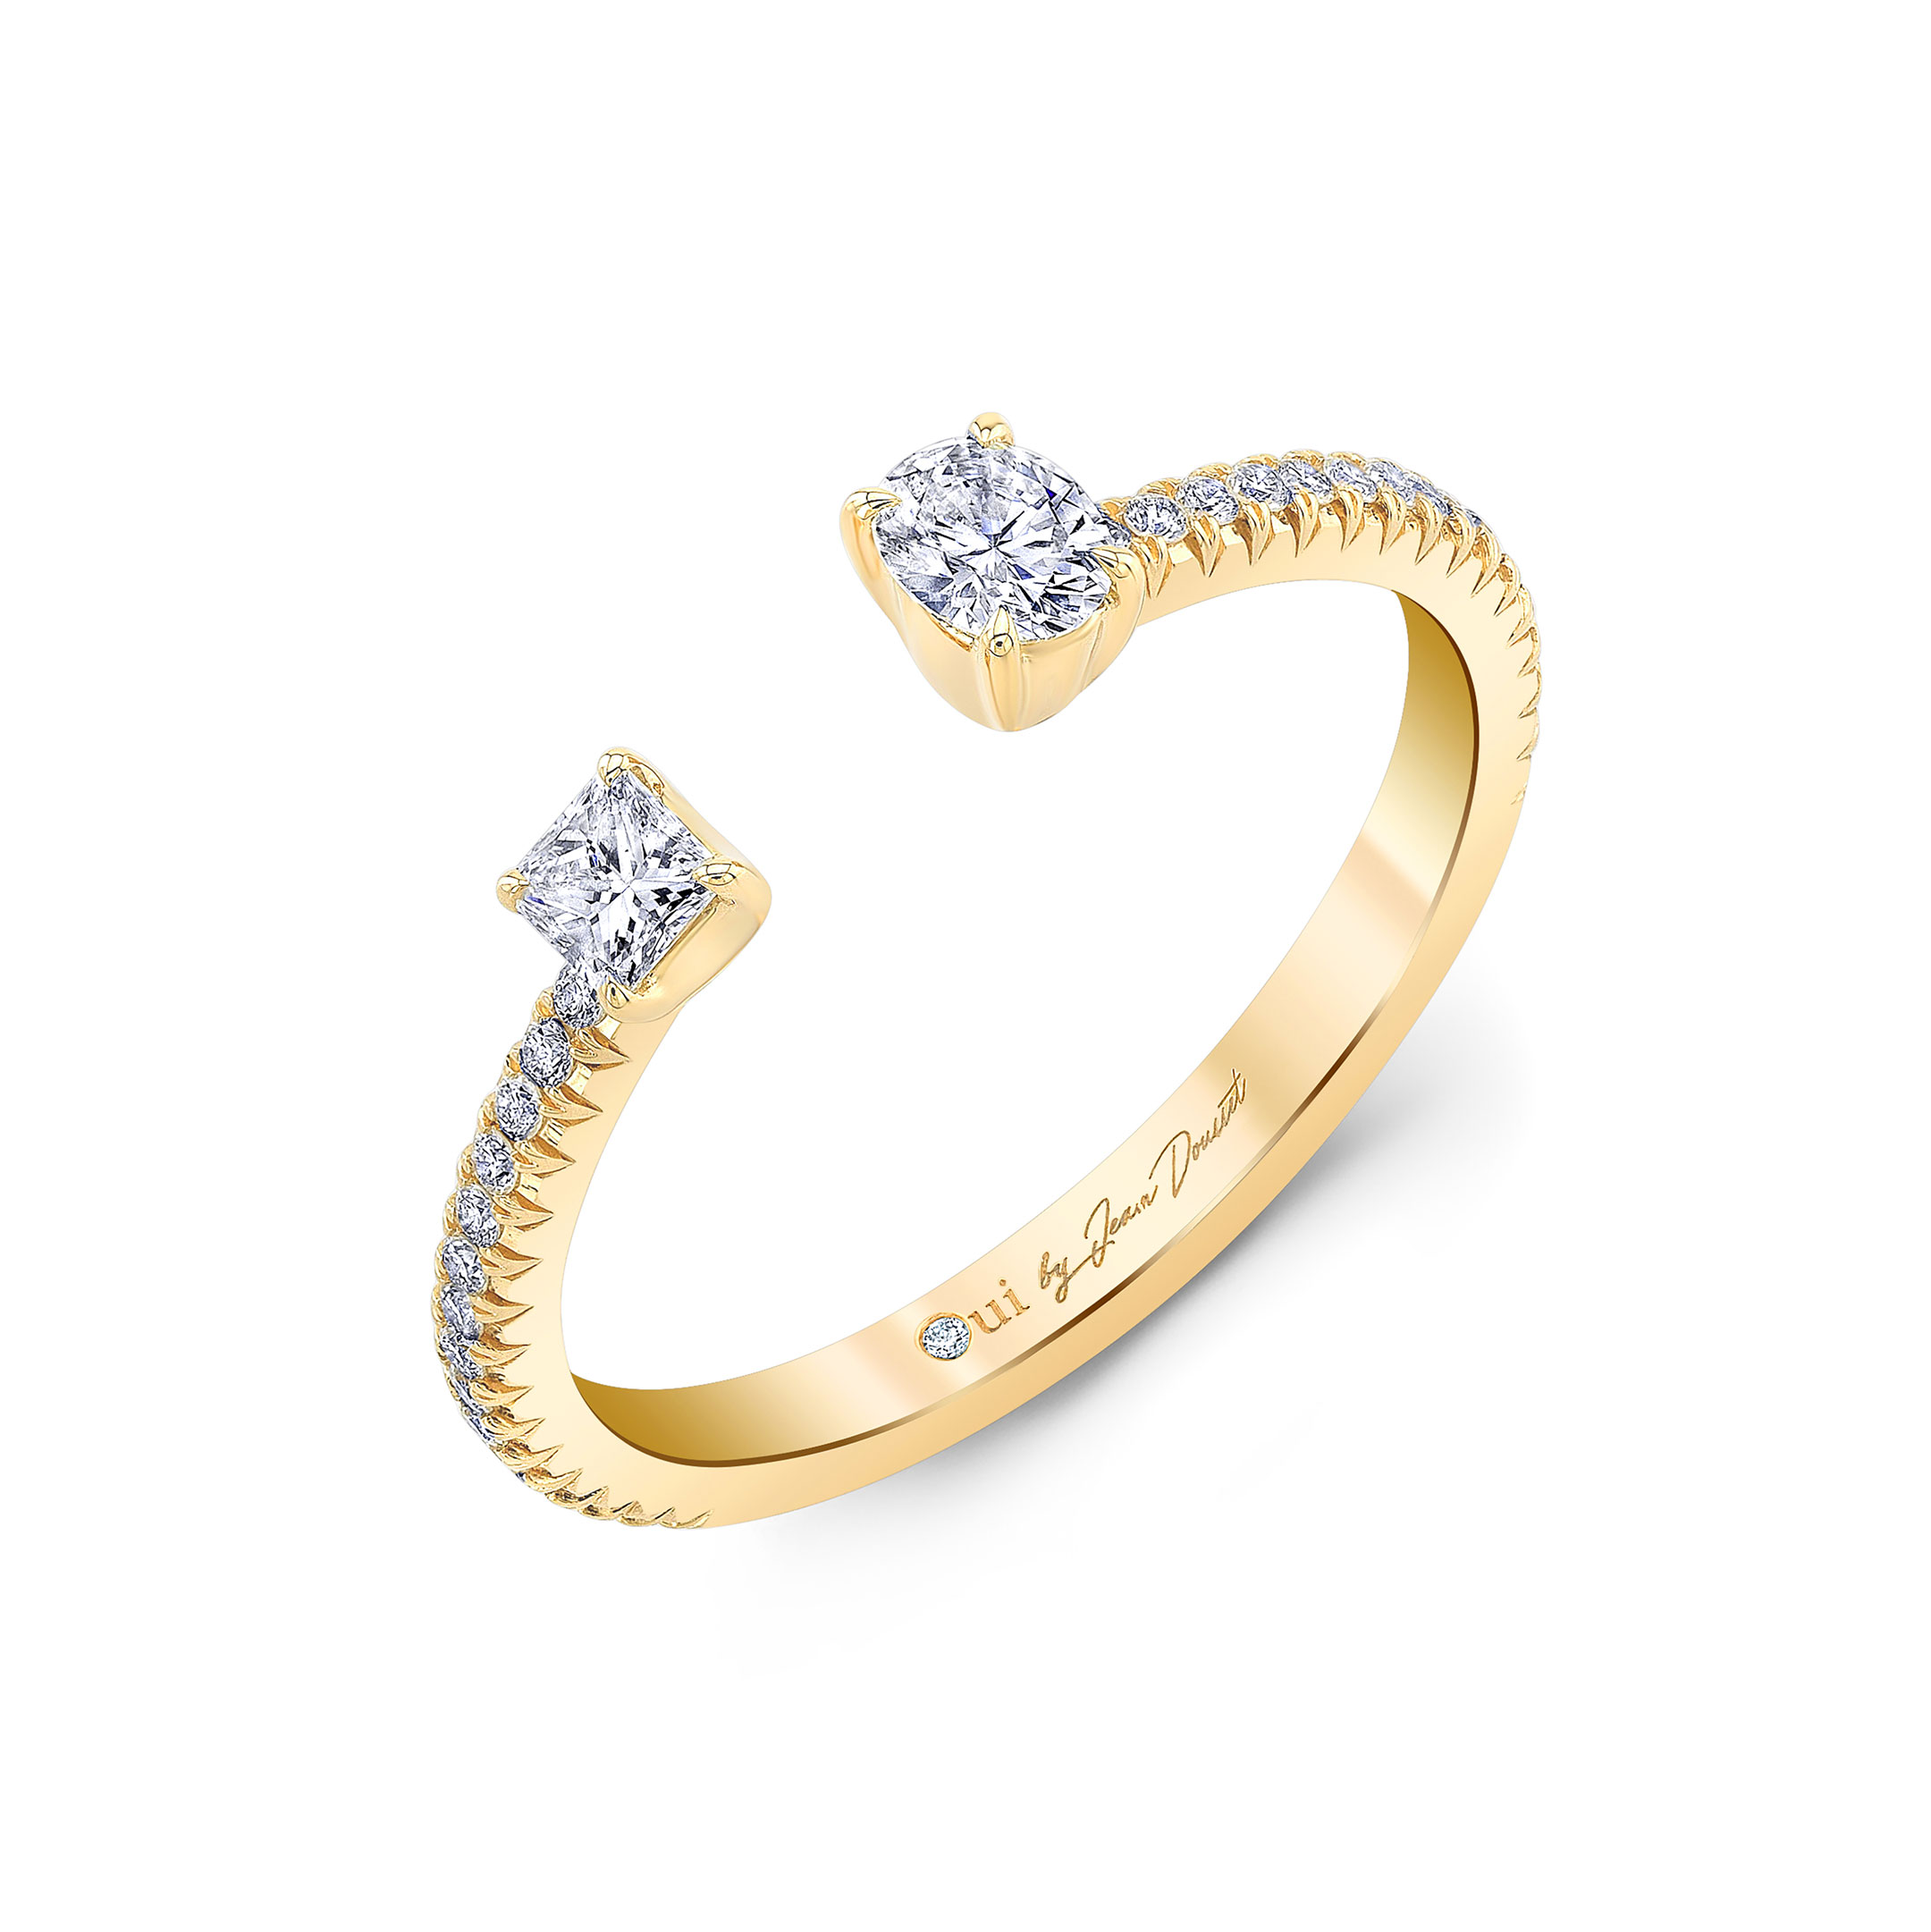 Celeste Mixed Diamond Open Pavé Ring, oval & princess in 18k Yellow Gold Profile View by Oui by Jean Dousset